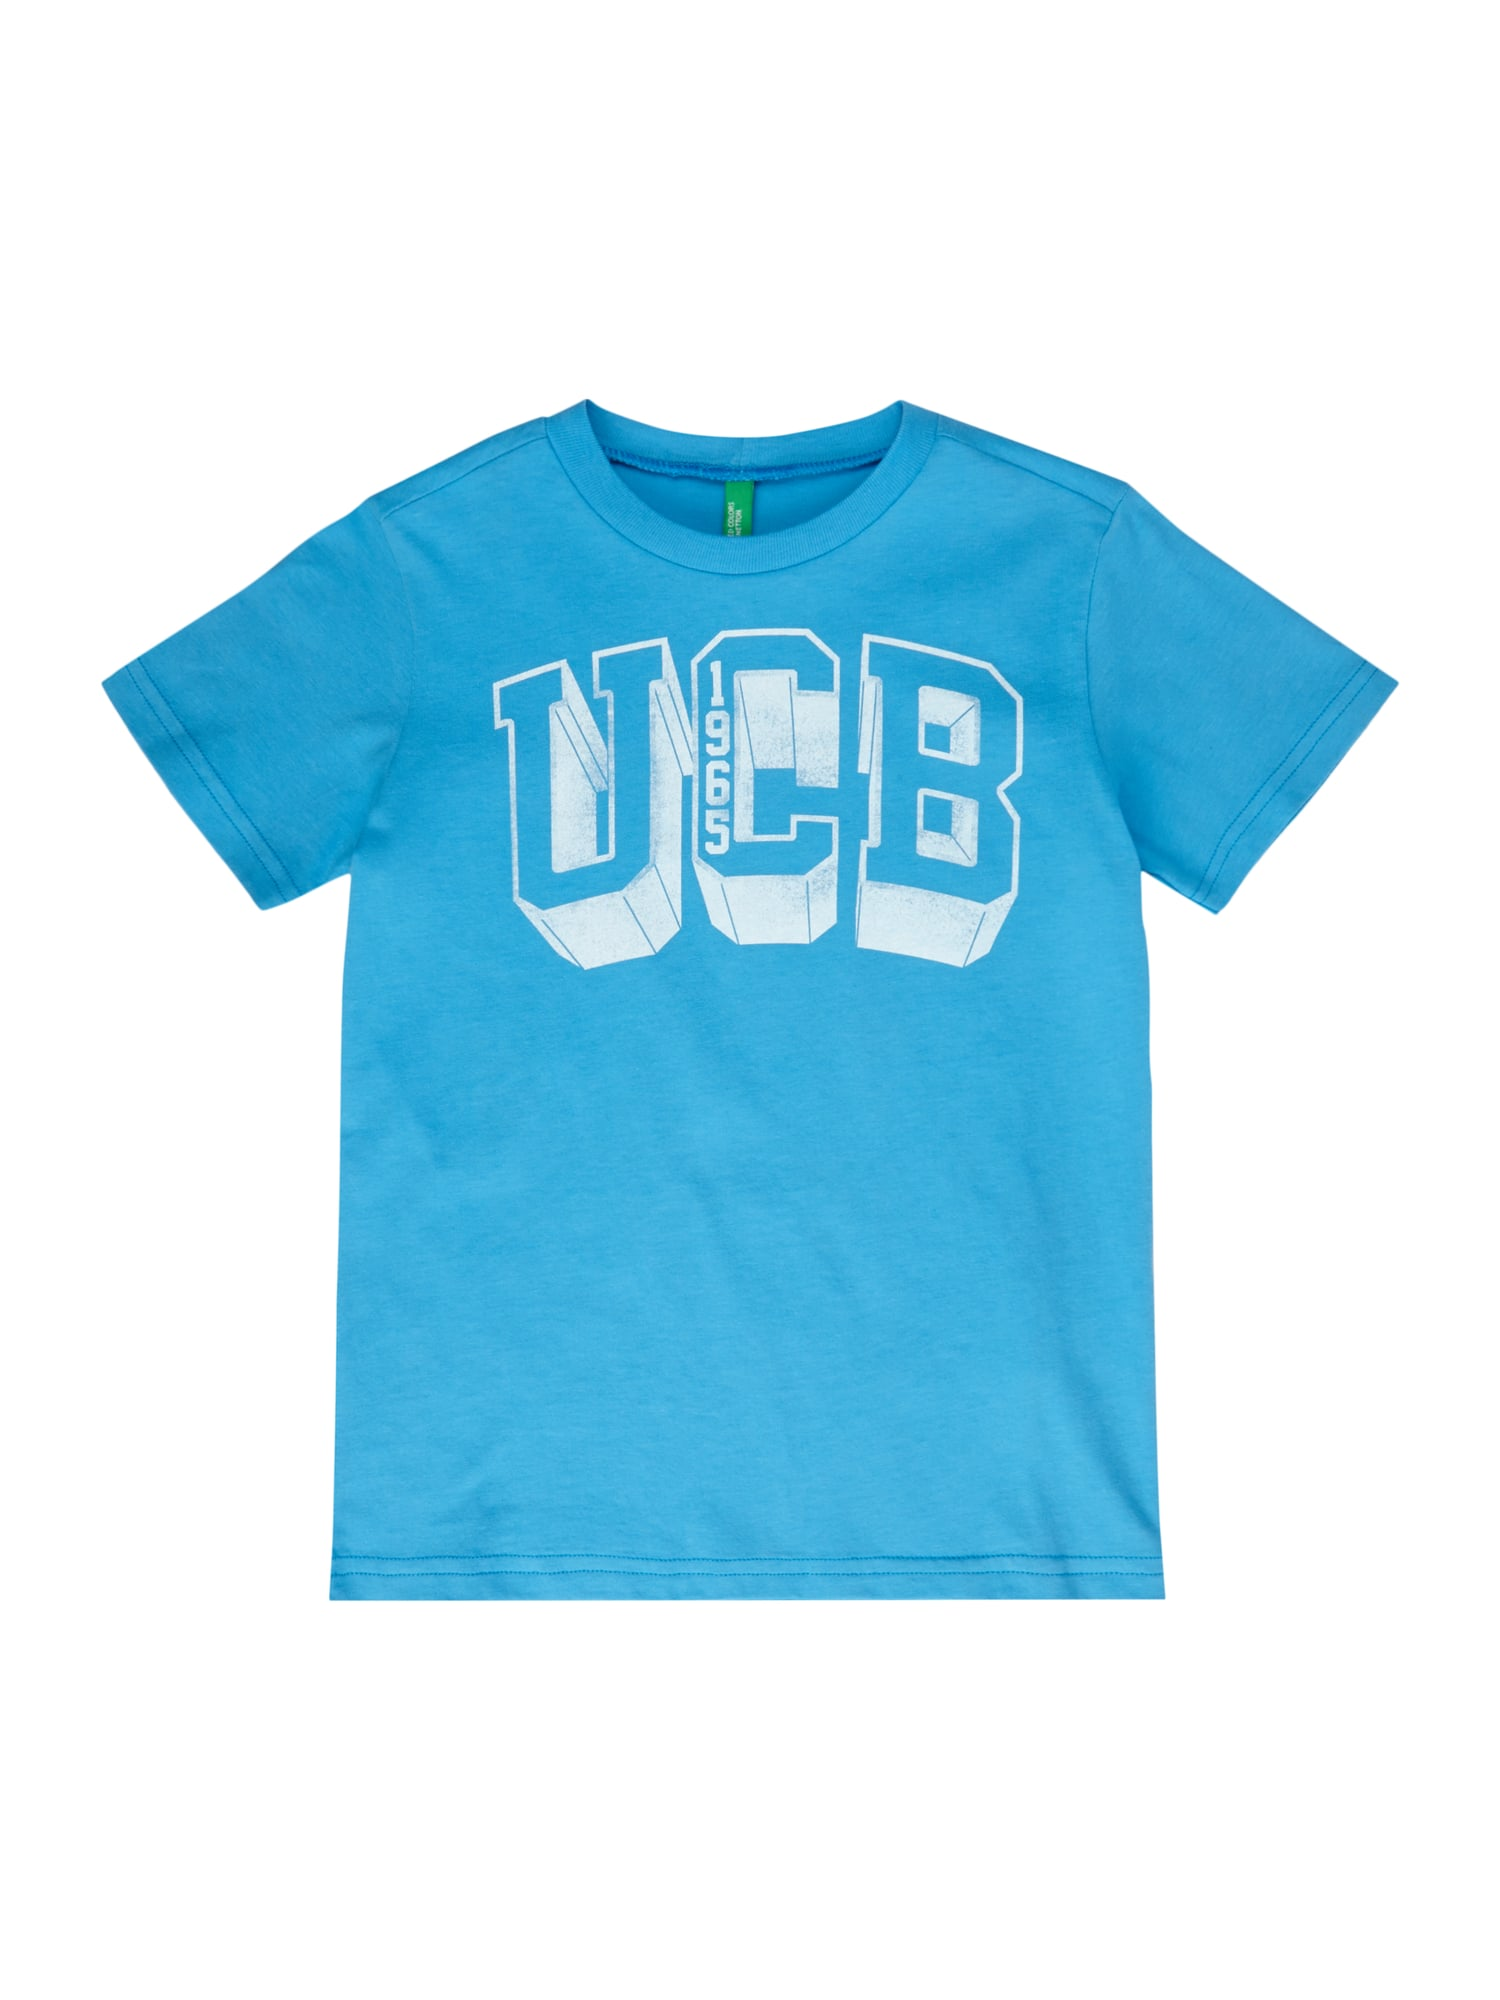 United colors of benetton t shirt mit logo print in blau for United colors of benetton logo